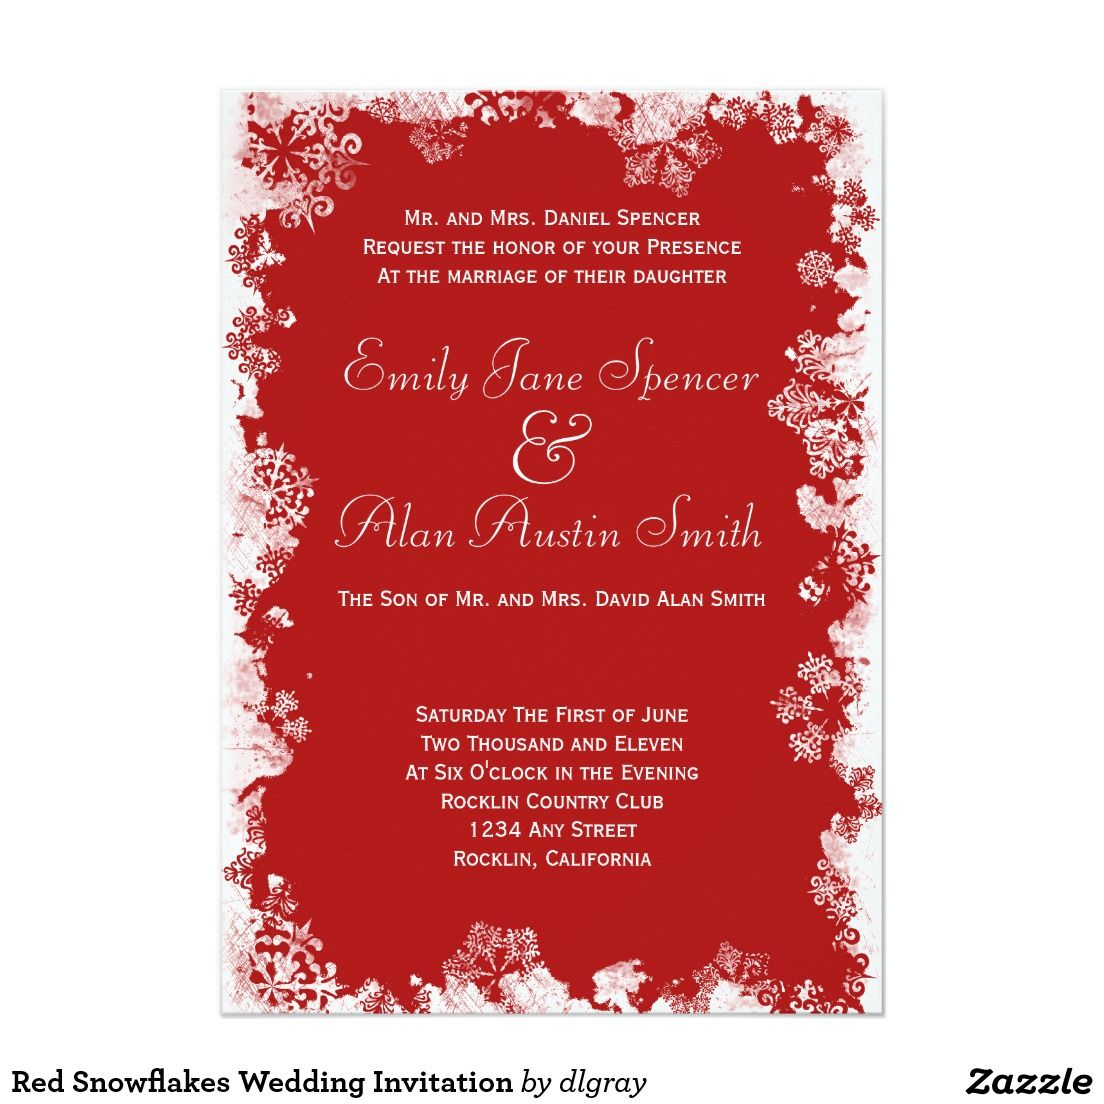 Red Snowflakes Wedding Invitation 5\